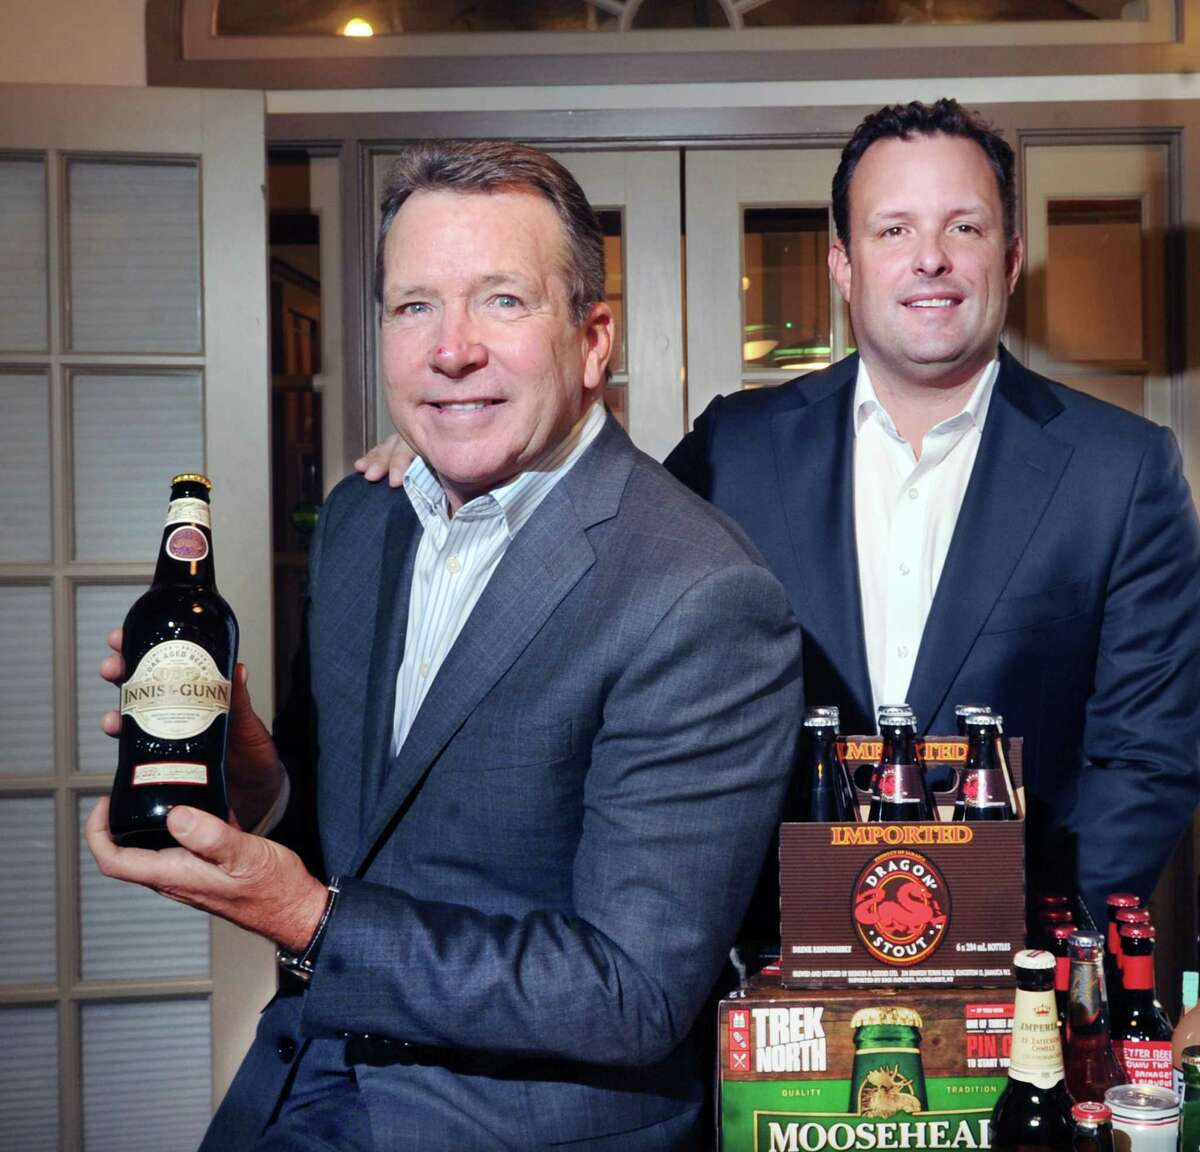 United States Beverage Chief Executive Officer Joseph Fisch, left, with his son, Justin Fisch, who was recently promoted to president of the company, posed with their company's beverages at their headquarters in Stamford, Conn., Friday, Nov. 10, 2017. The company is entering its third decade of business competing in the U.S. beer industry and focuses on the imported and U.S. craft beer, cider and specialty beverage markets.